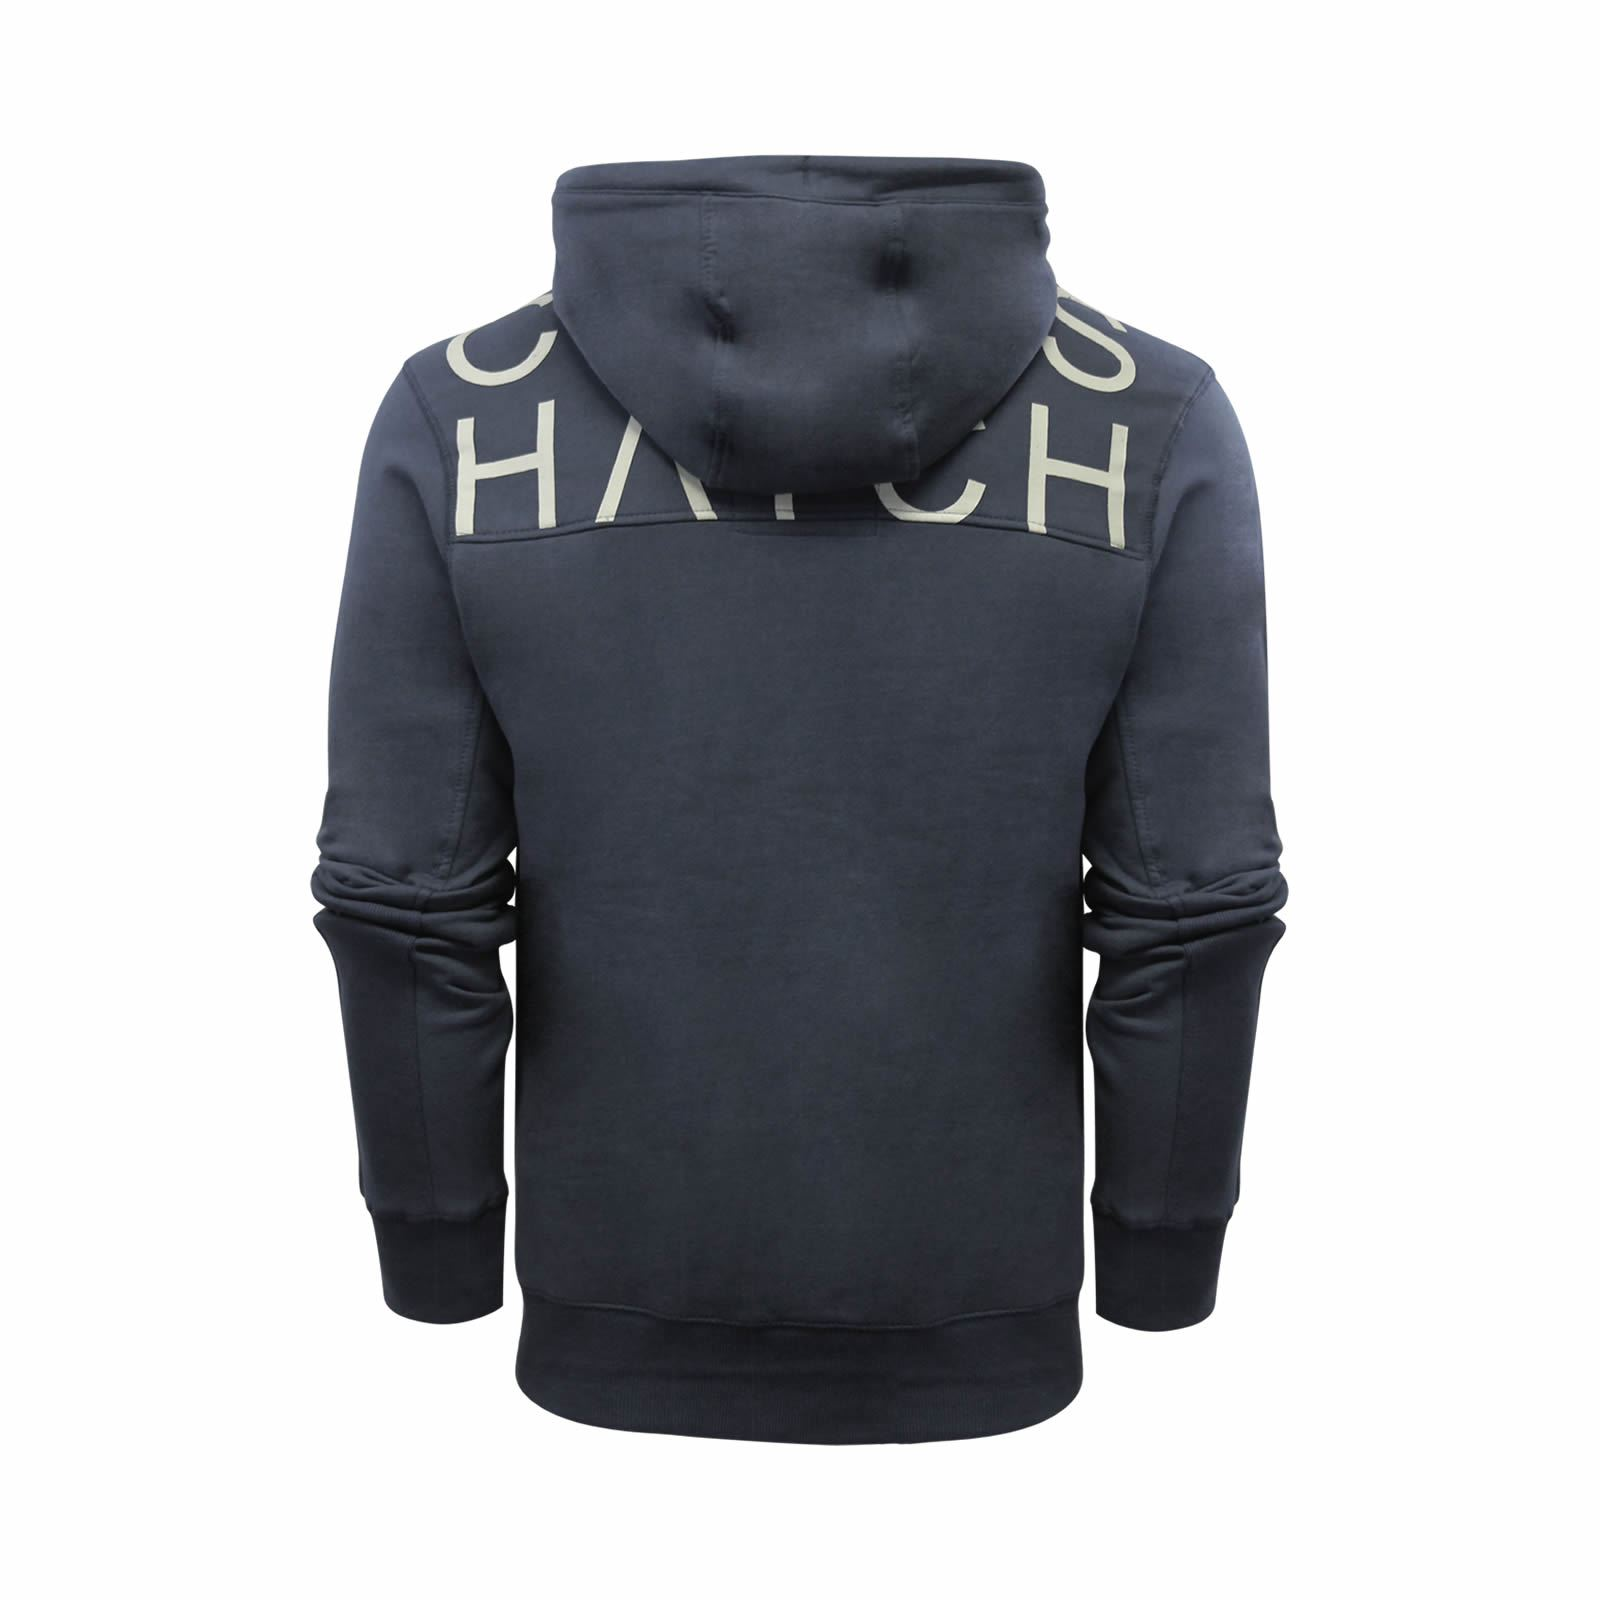 Mens-Hoodie-Crosshatch-Sunbirds-Cotton-Hooded-Pull-Over-Sweater thumbnail 5